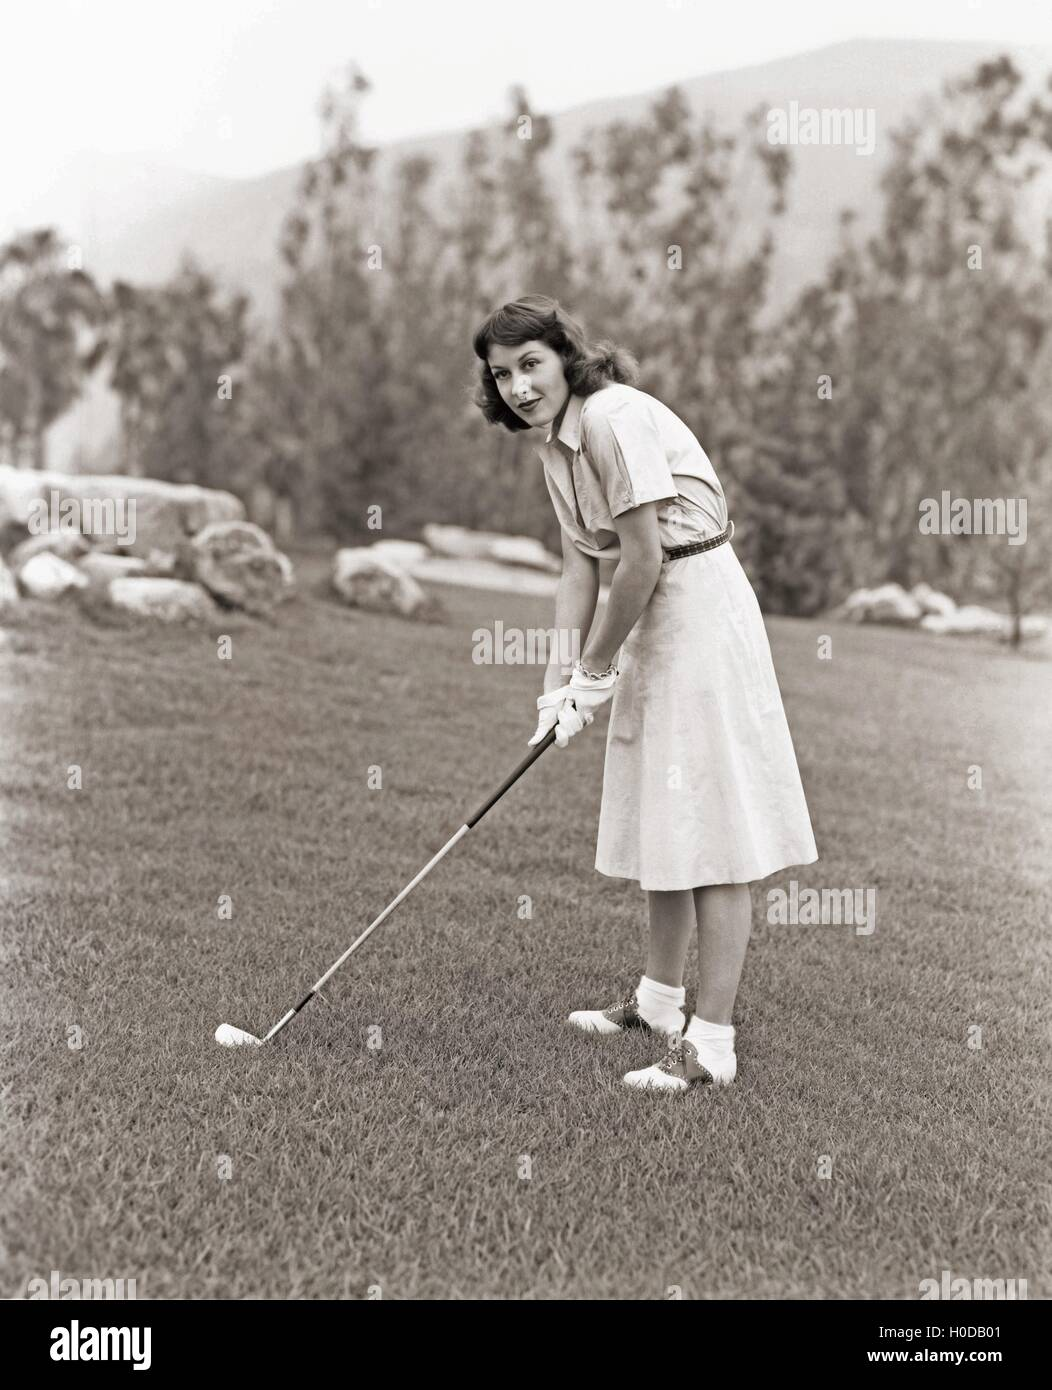 Woman in white gloves playing golf - Stock Image